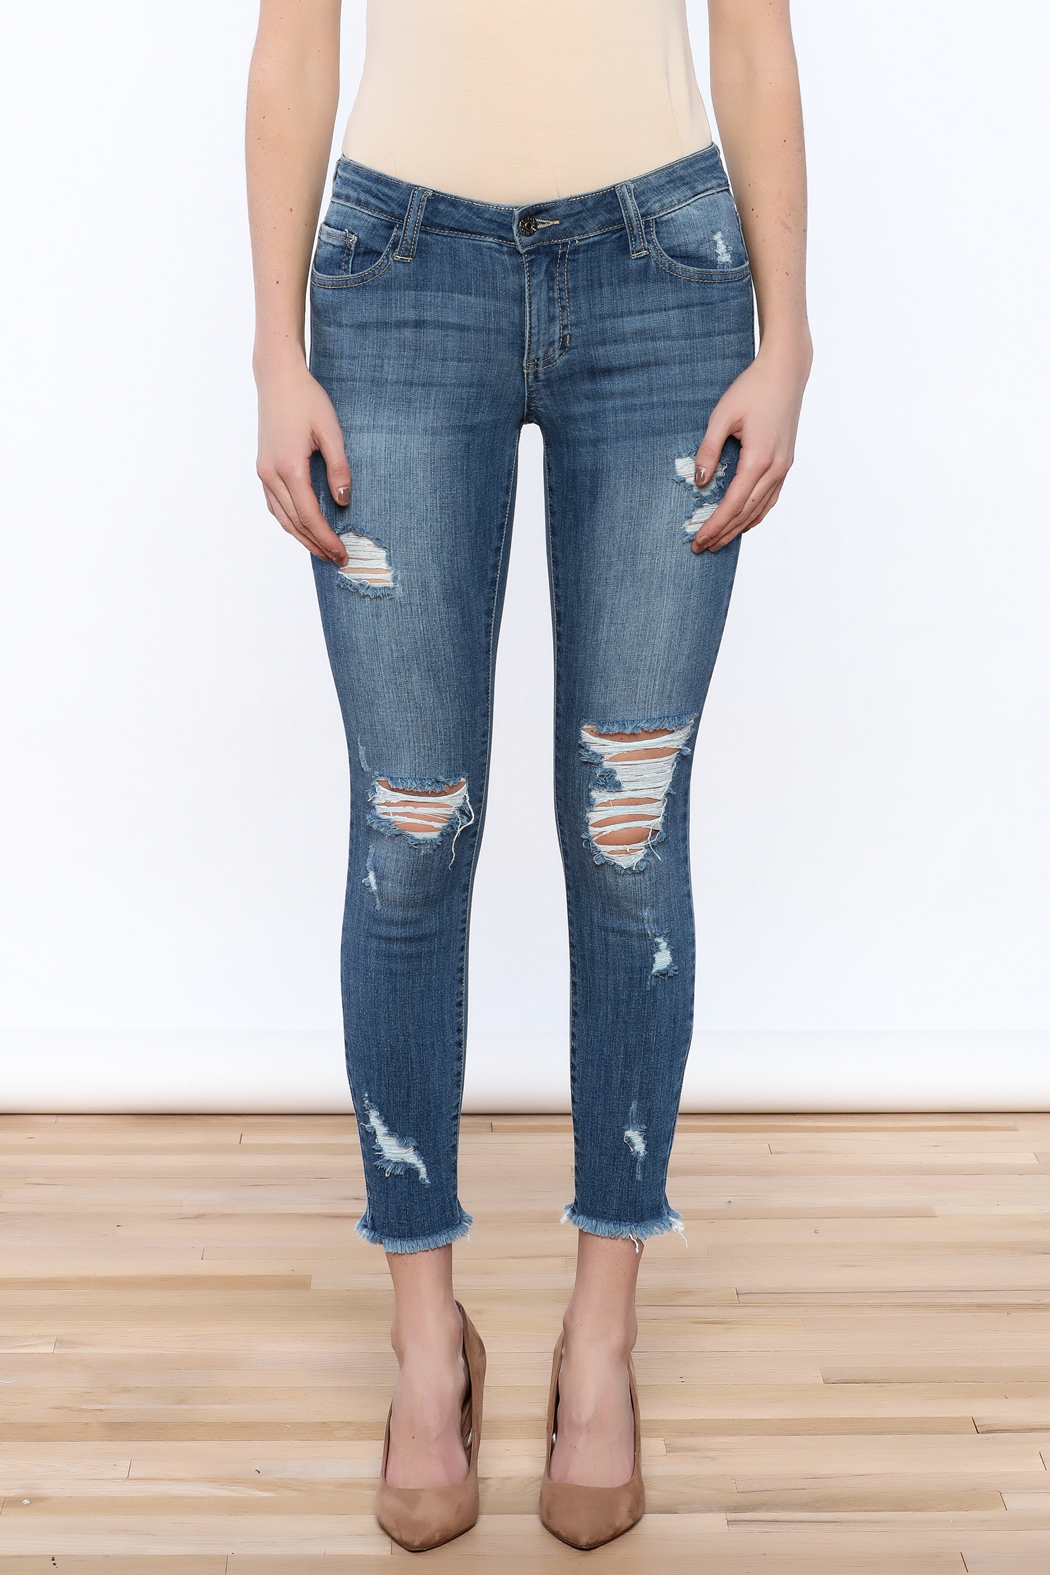 Cello Jeans Crop Skinny Jeans From Long Island By EPIC